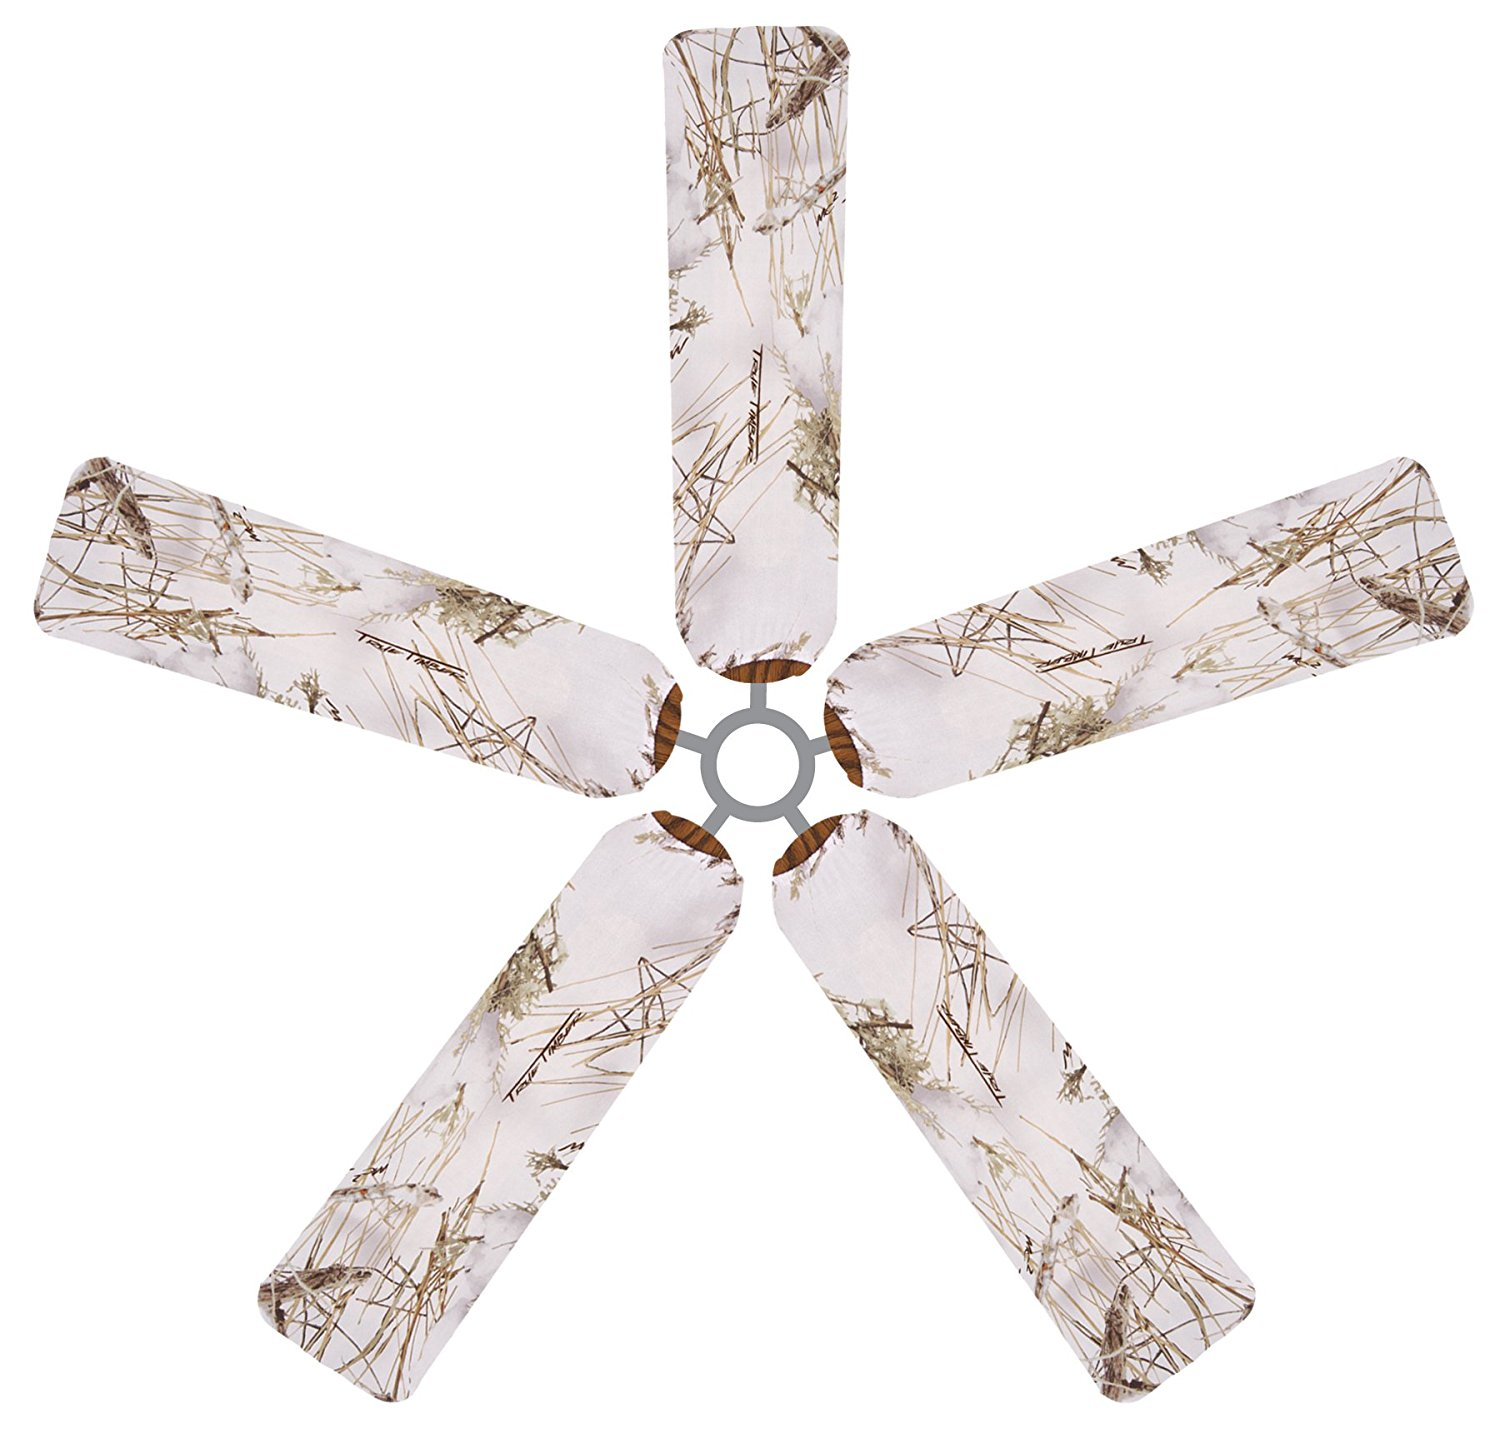 White Camo Ceiling Fan Blade Covers by Fan Blade Designs